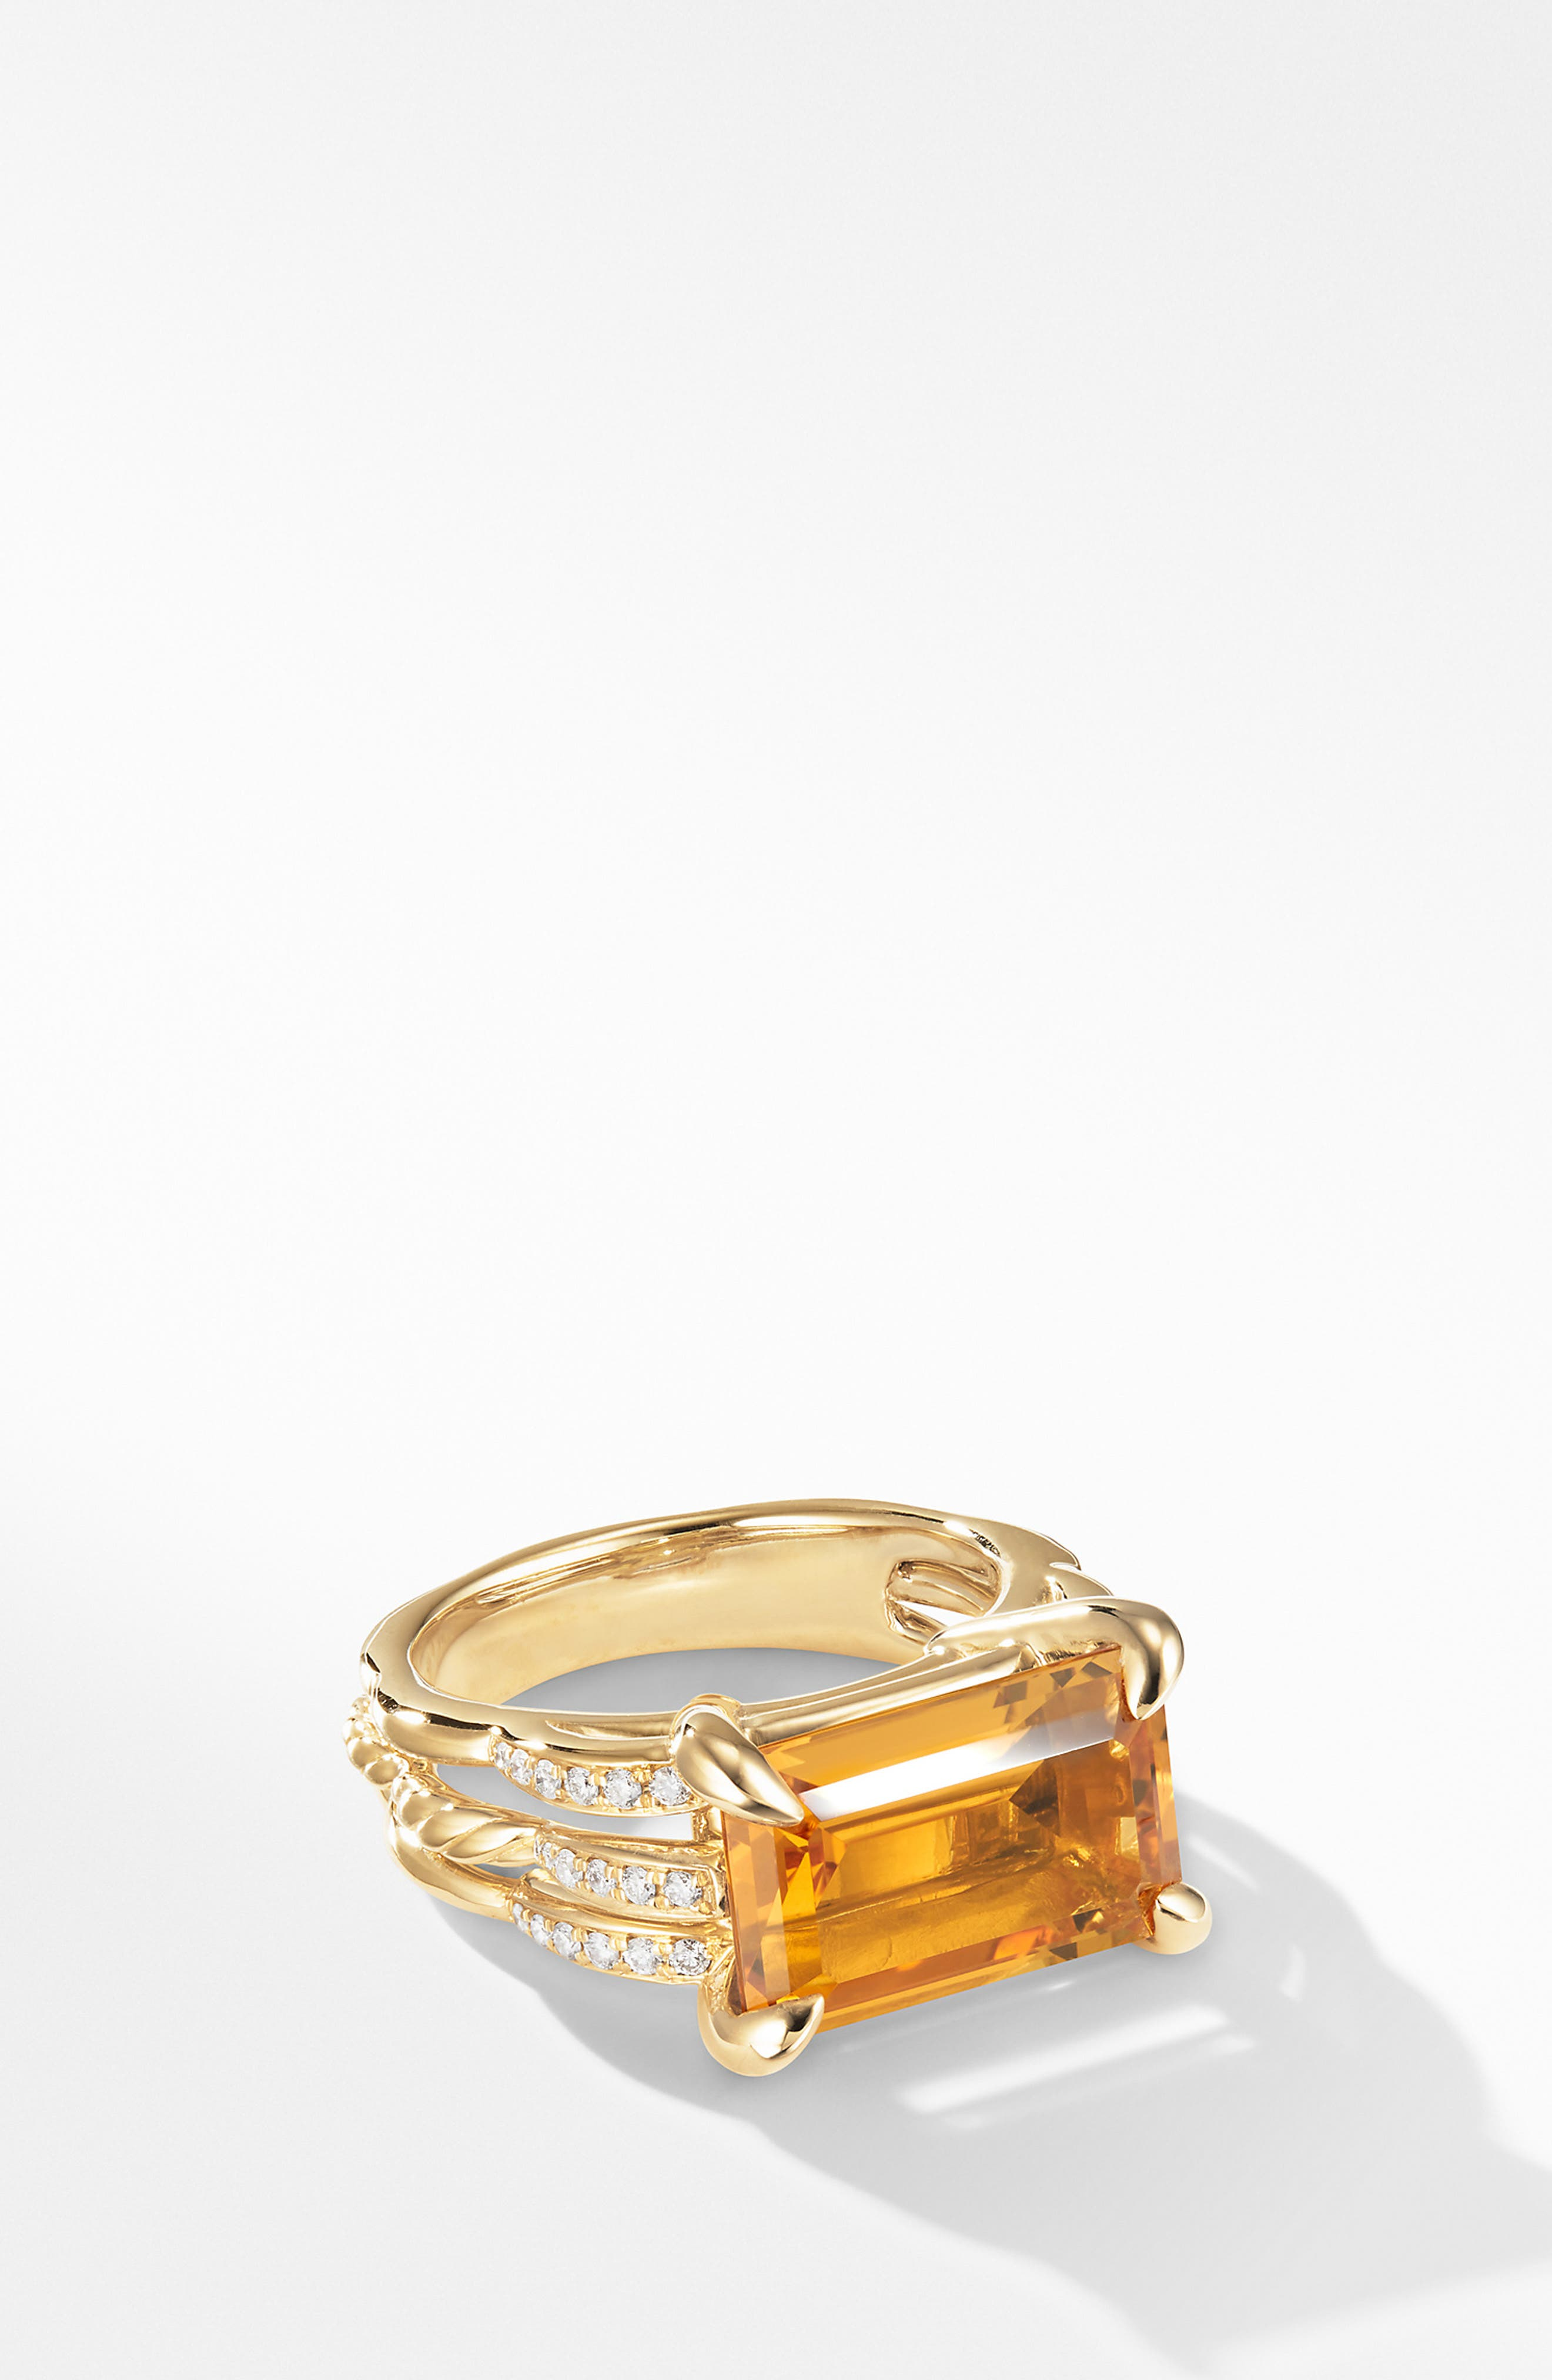 Tides Ring in 18k Gold with Diamonds,                             Main thumbnail 1, color,                             GOLD/ CITRINE